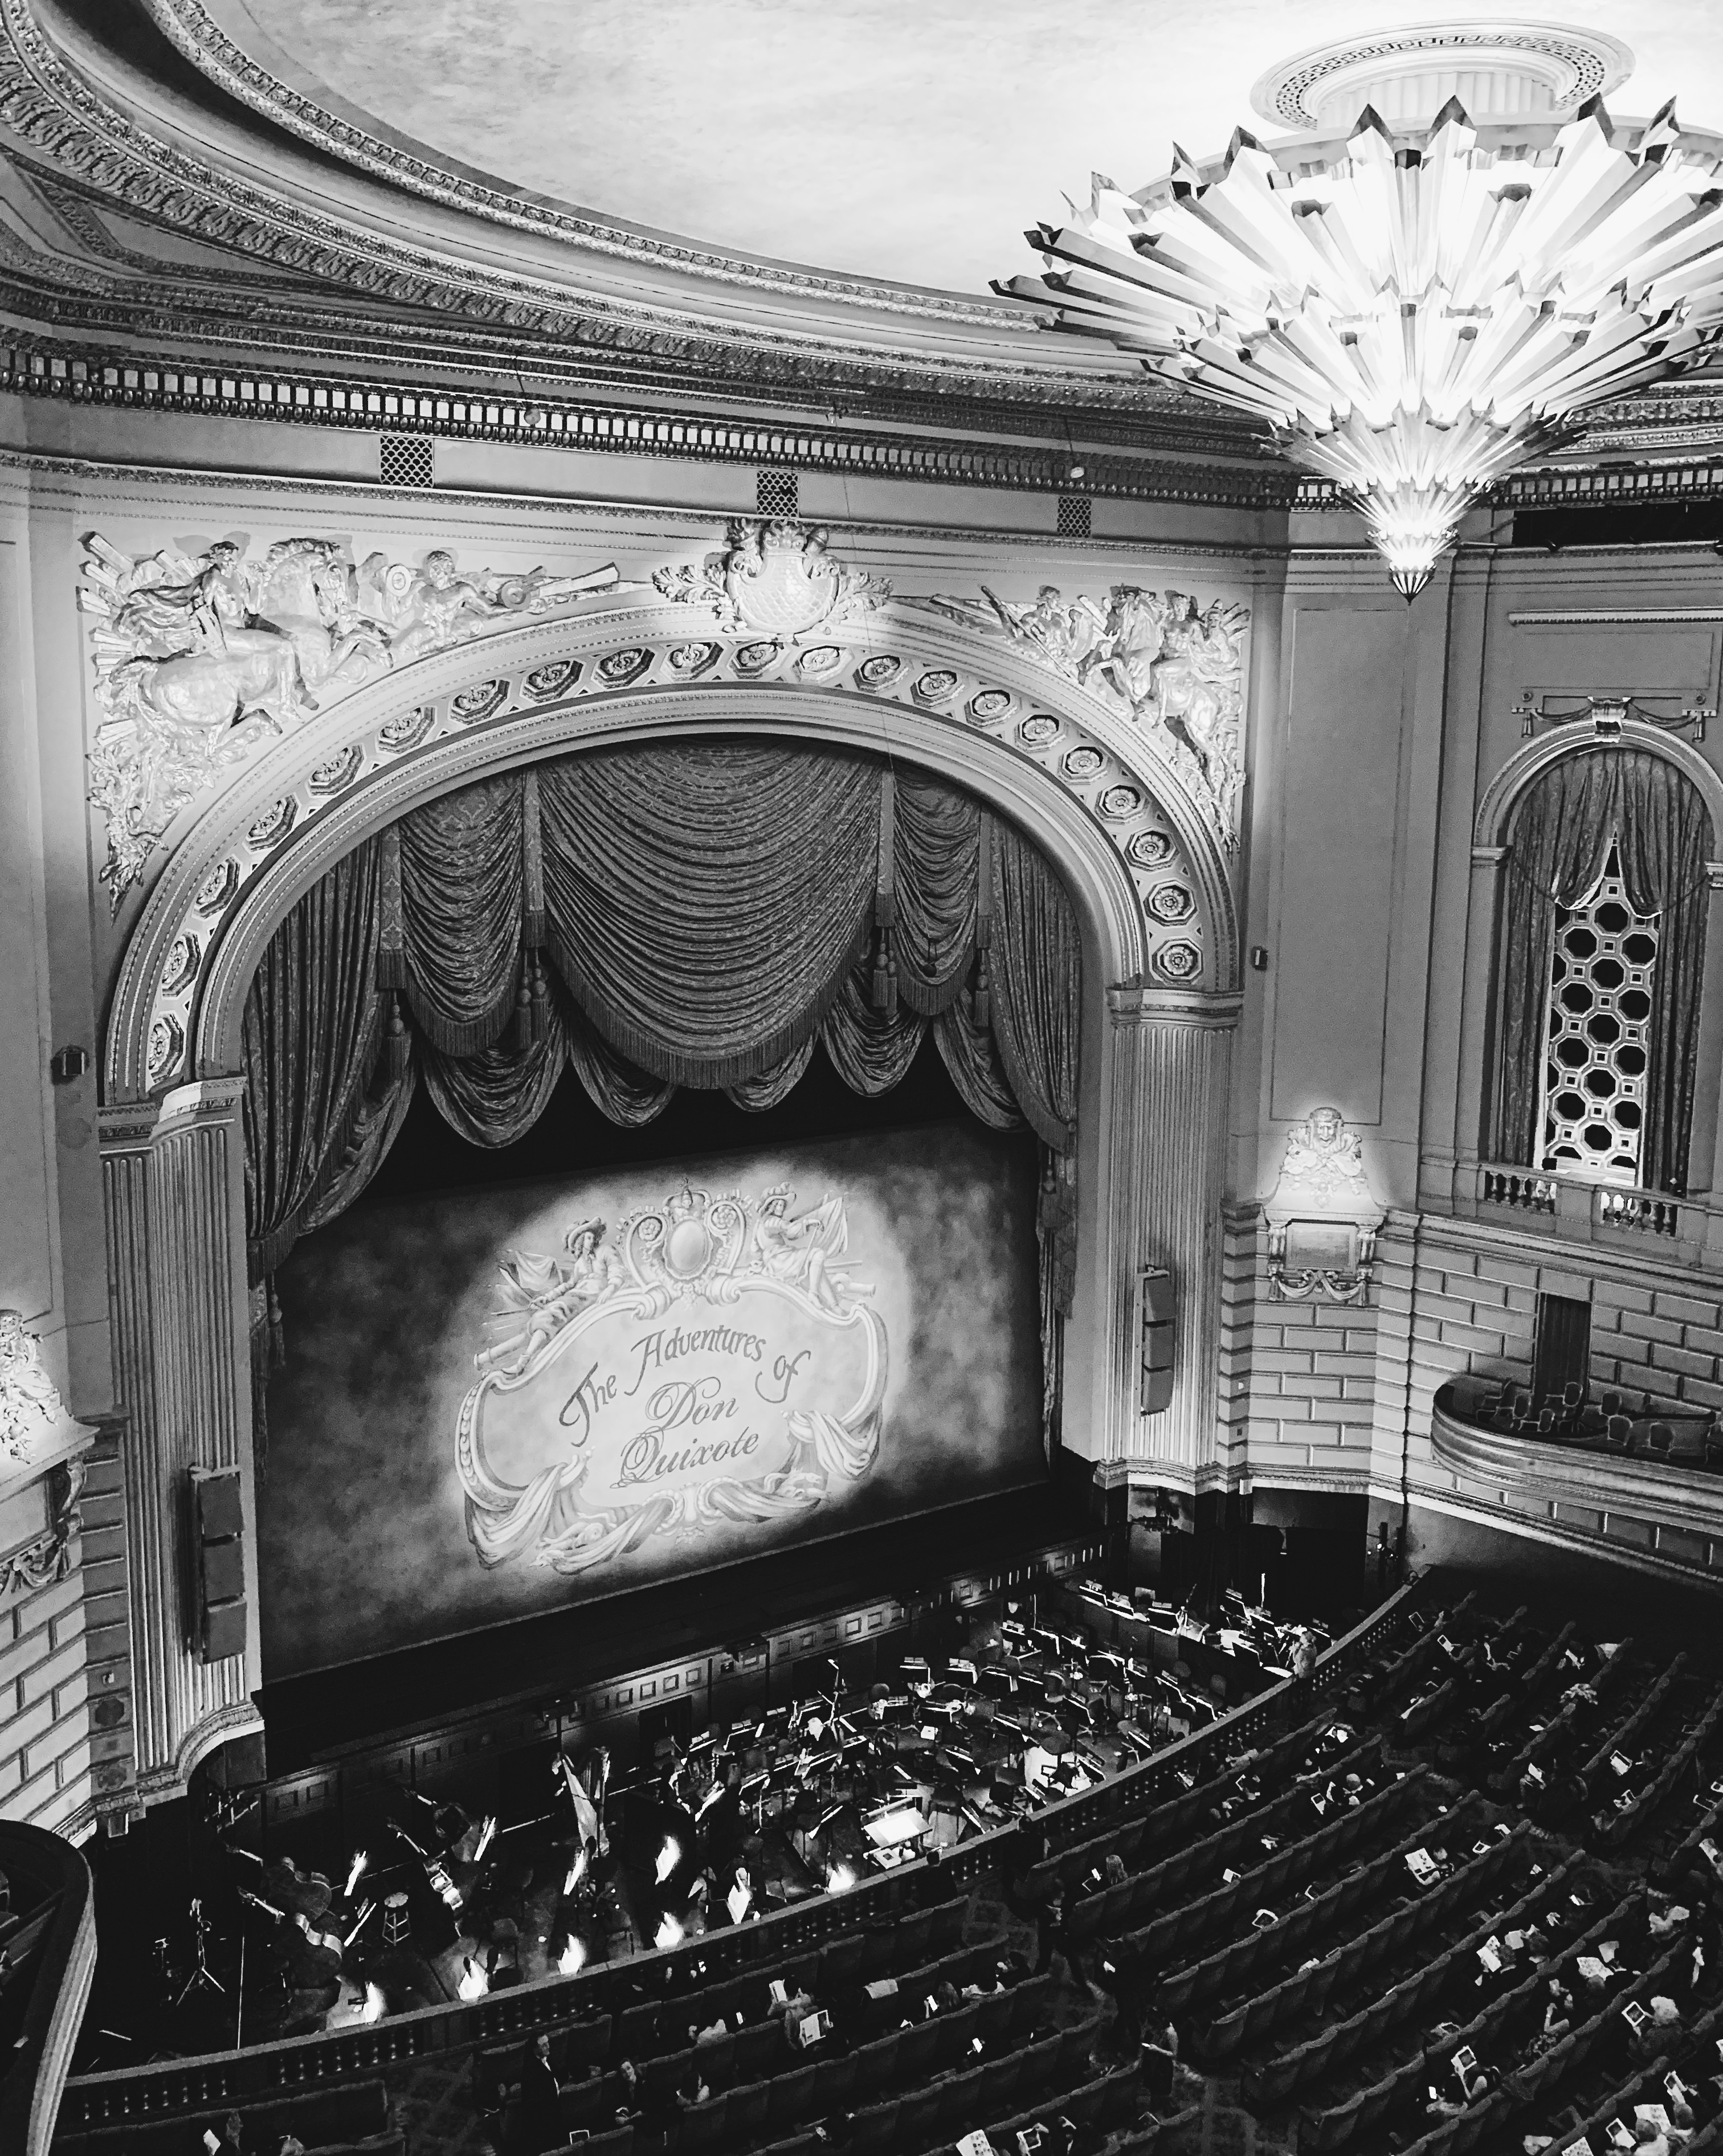 San Francisco Ballet at the War Memorial Opera House